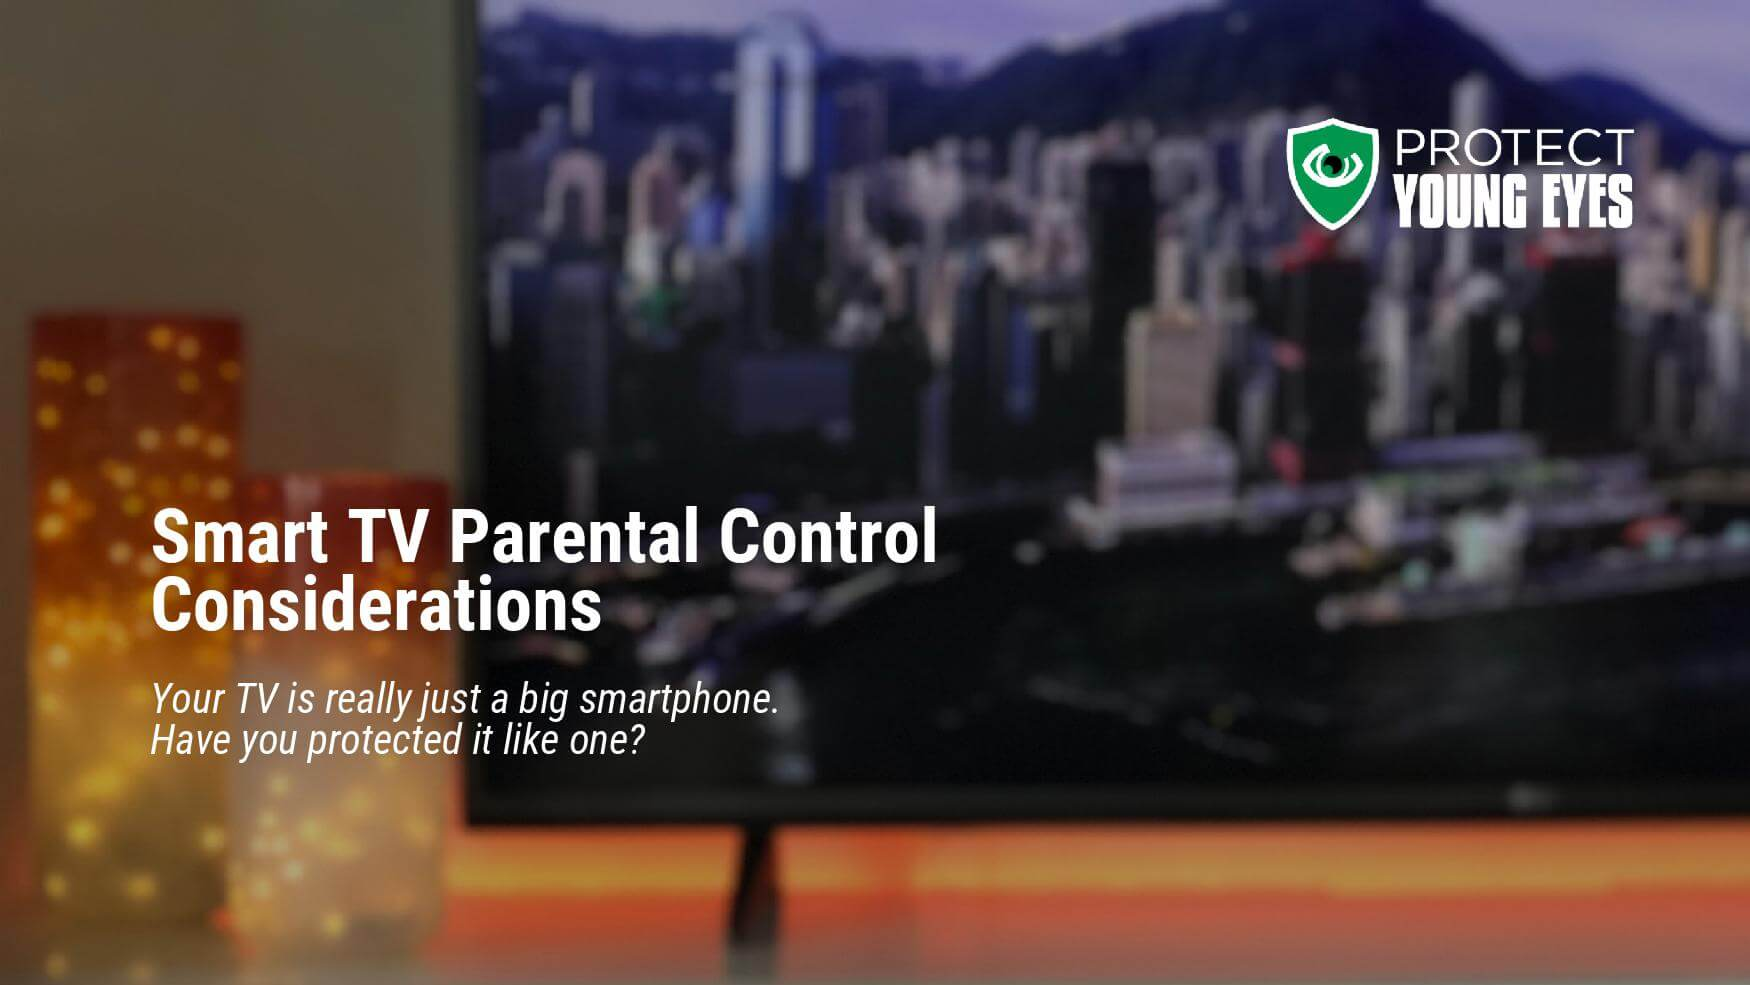 How to Protect Kids from the Smart TV - Protect Young Eyes Blog